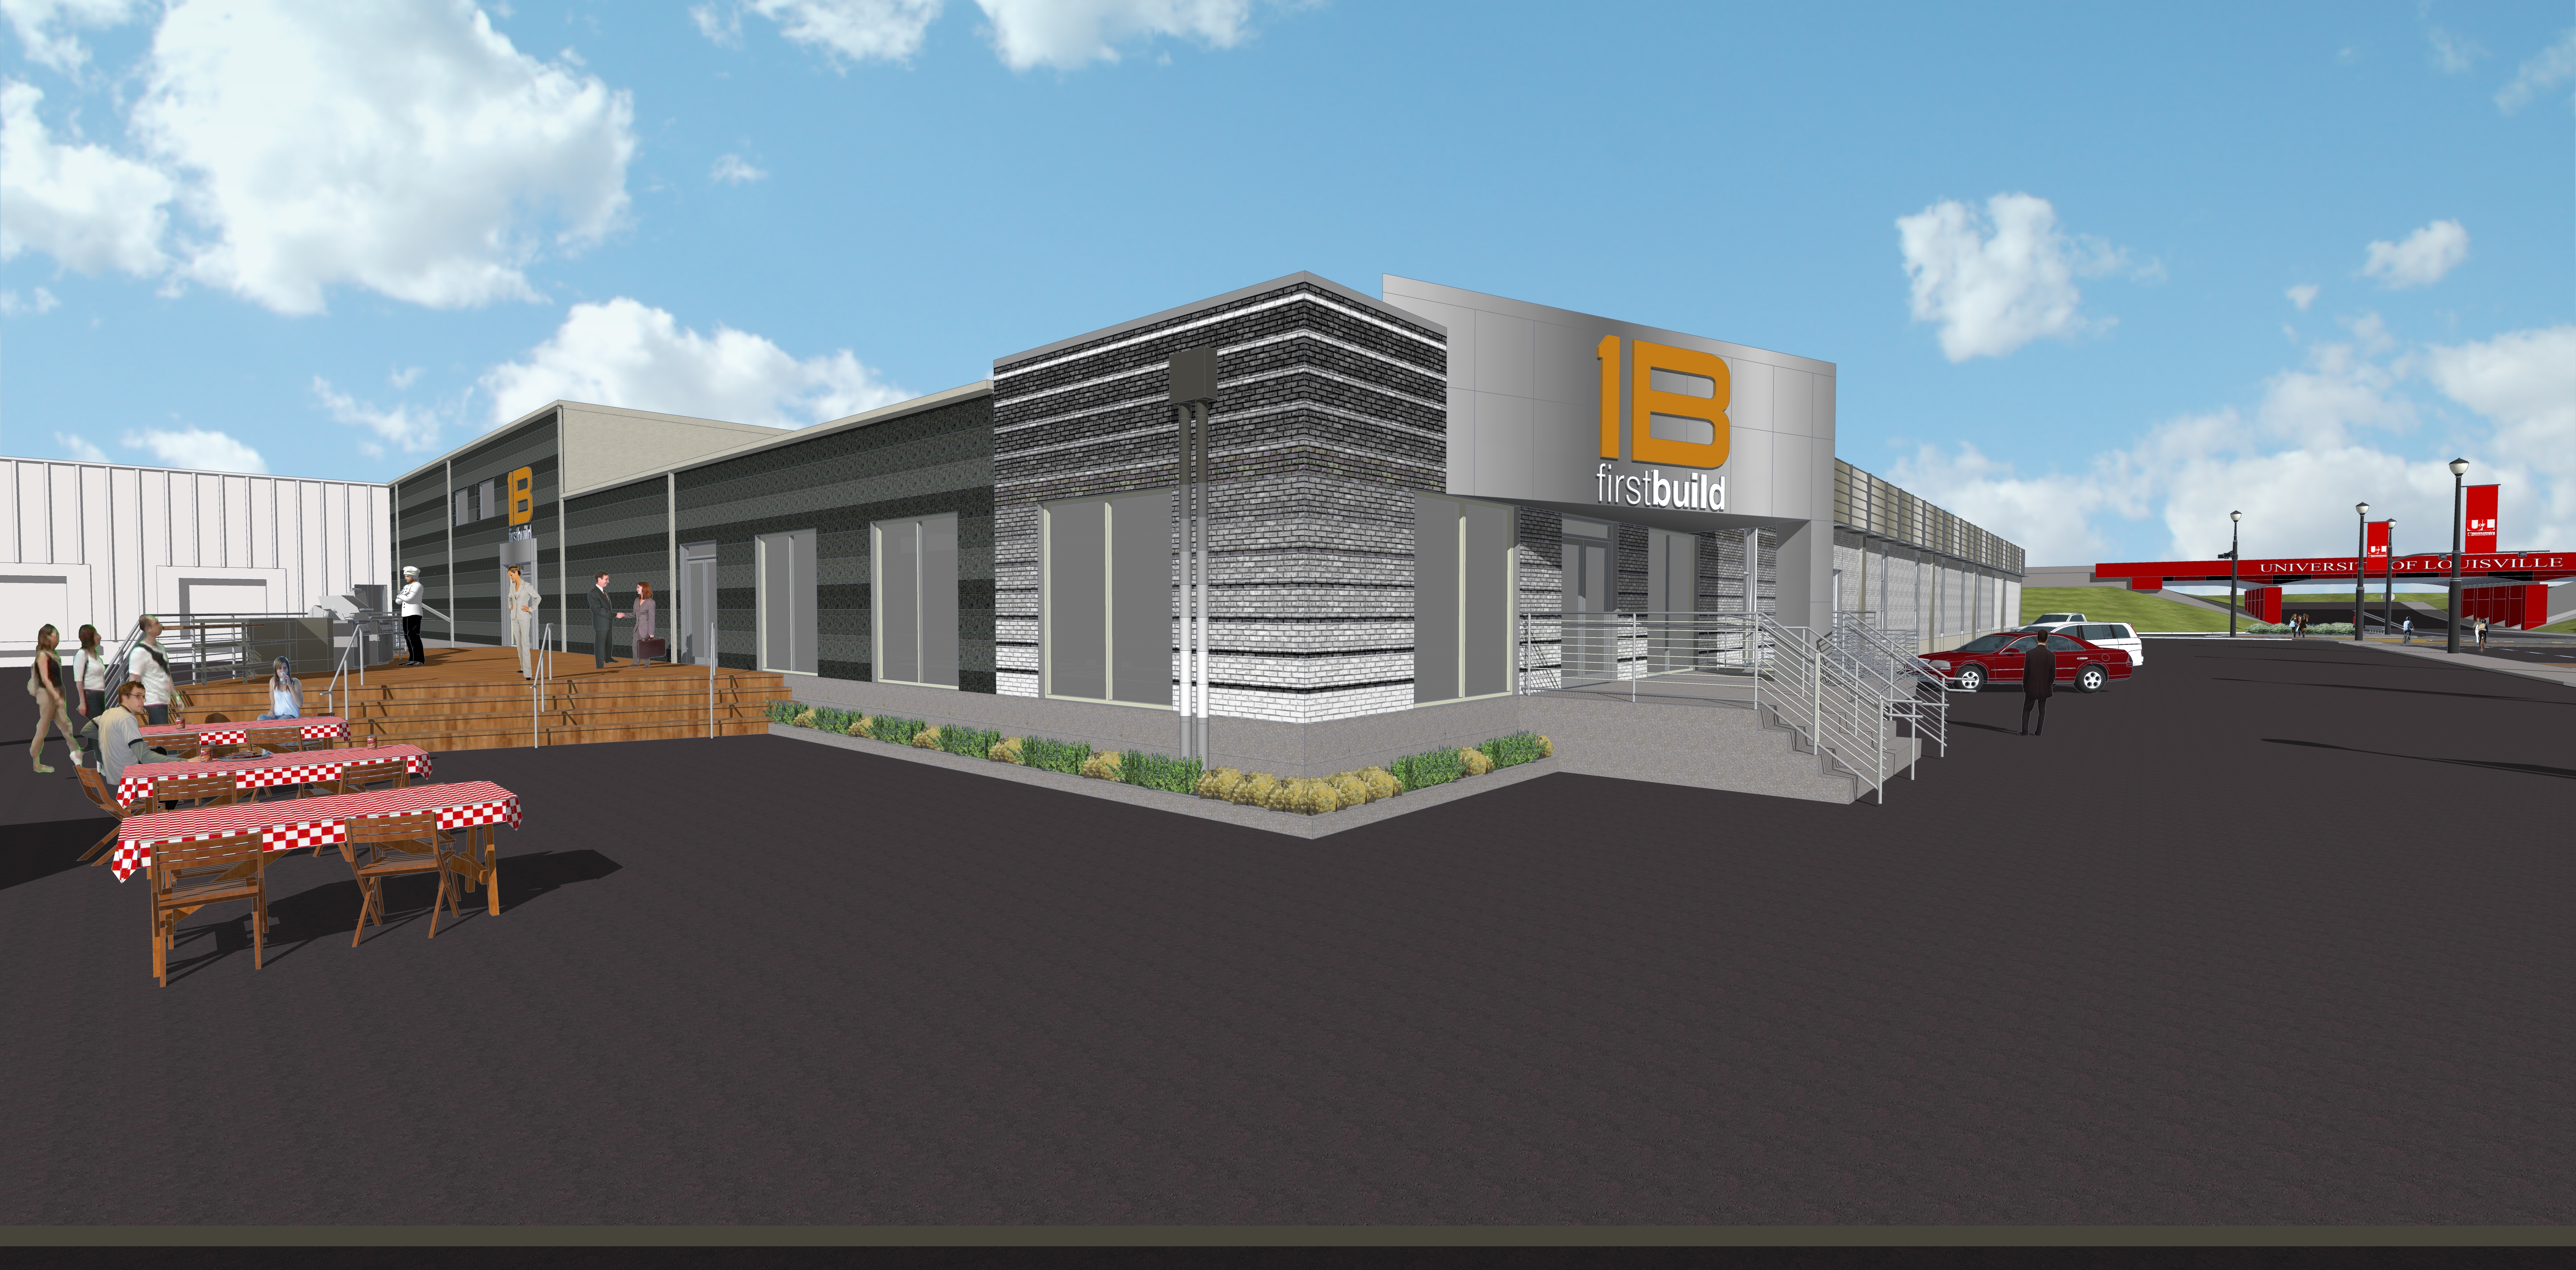 The new FirstBuild micro-factory will be located in Louisville, Ky., and will officially open this summer. (Photo: GE)